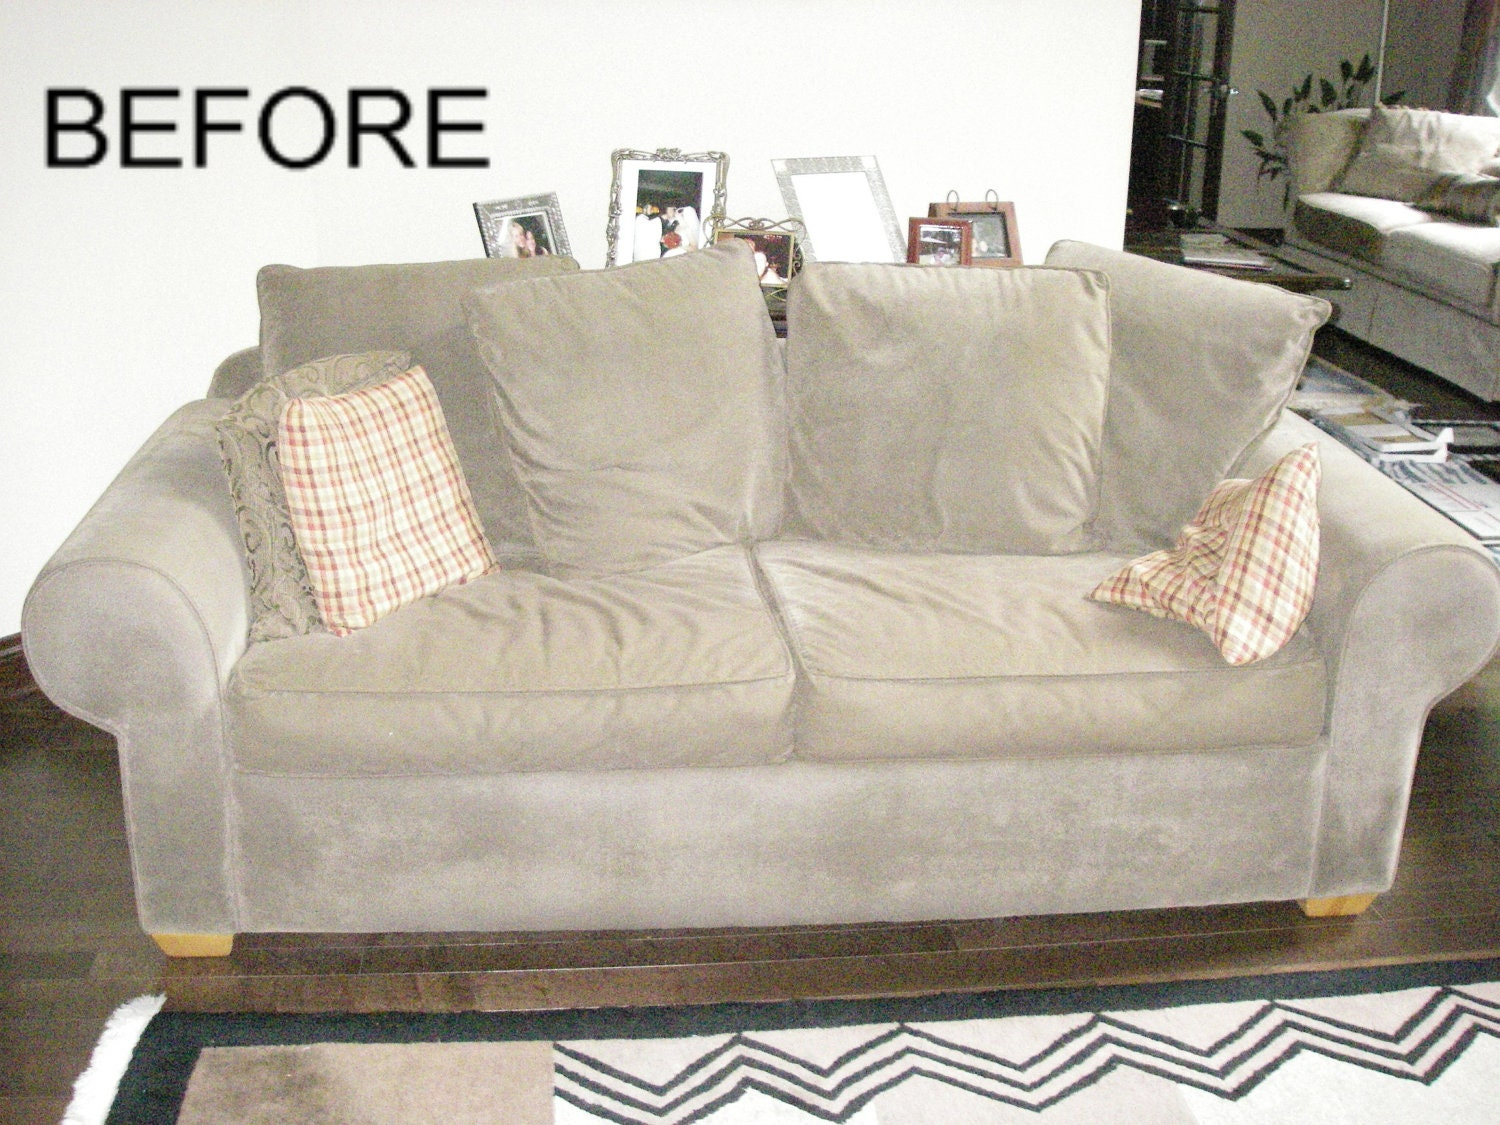 Couch Slipcovers For Reclining Sofa & Couch Slipcovers For Reclining Sofa - Laura Williams islam-shia.org